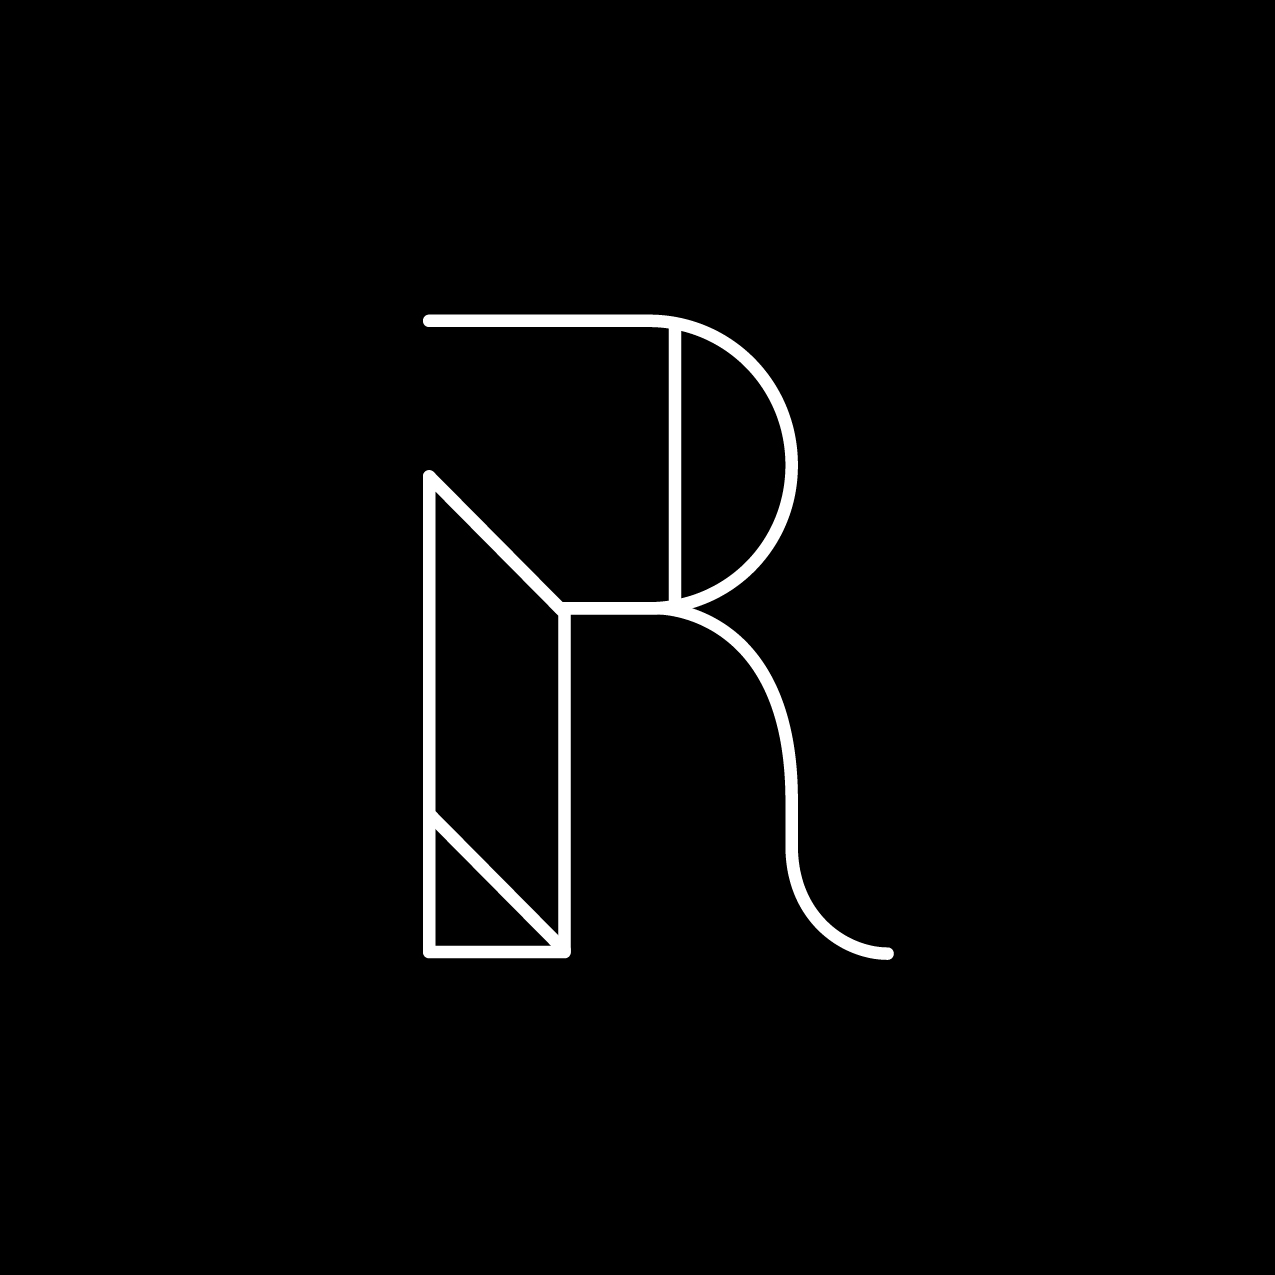 Letter R8 Design by Furia